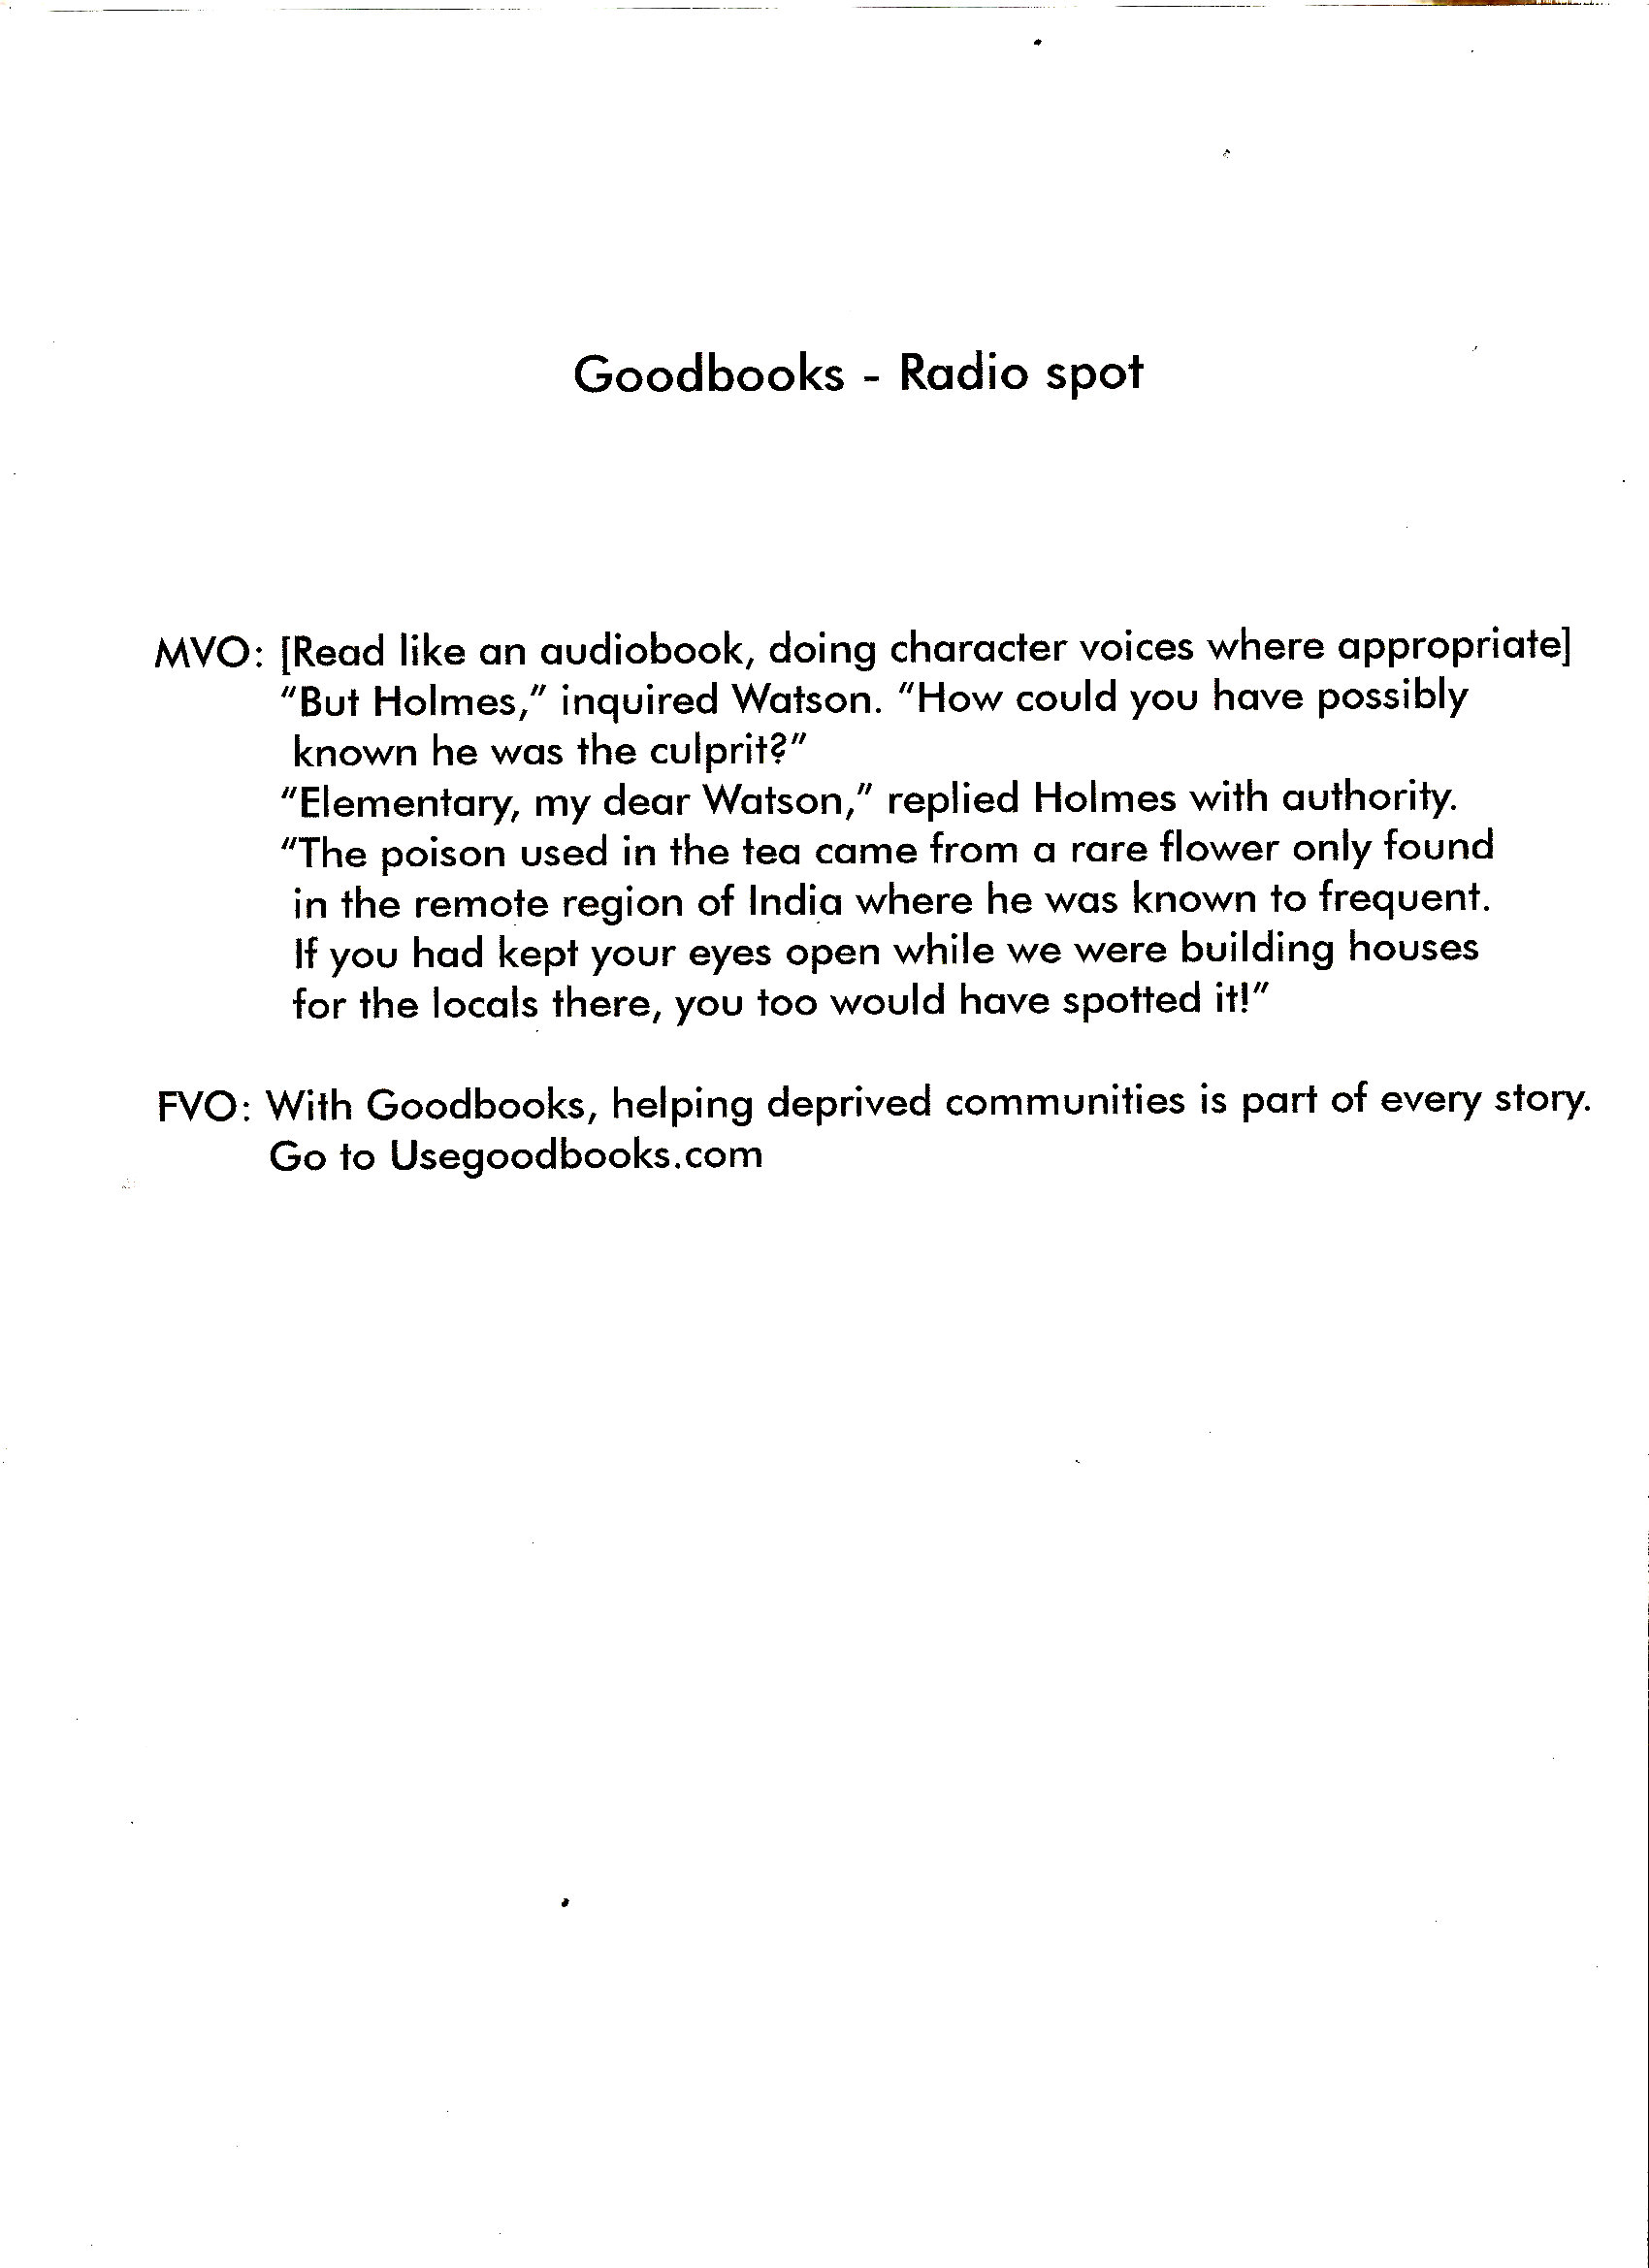 Prop: Proceeds from Goodreads go to charity.